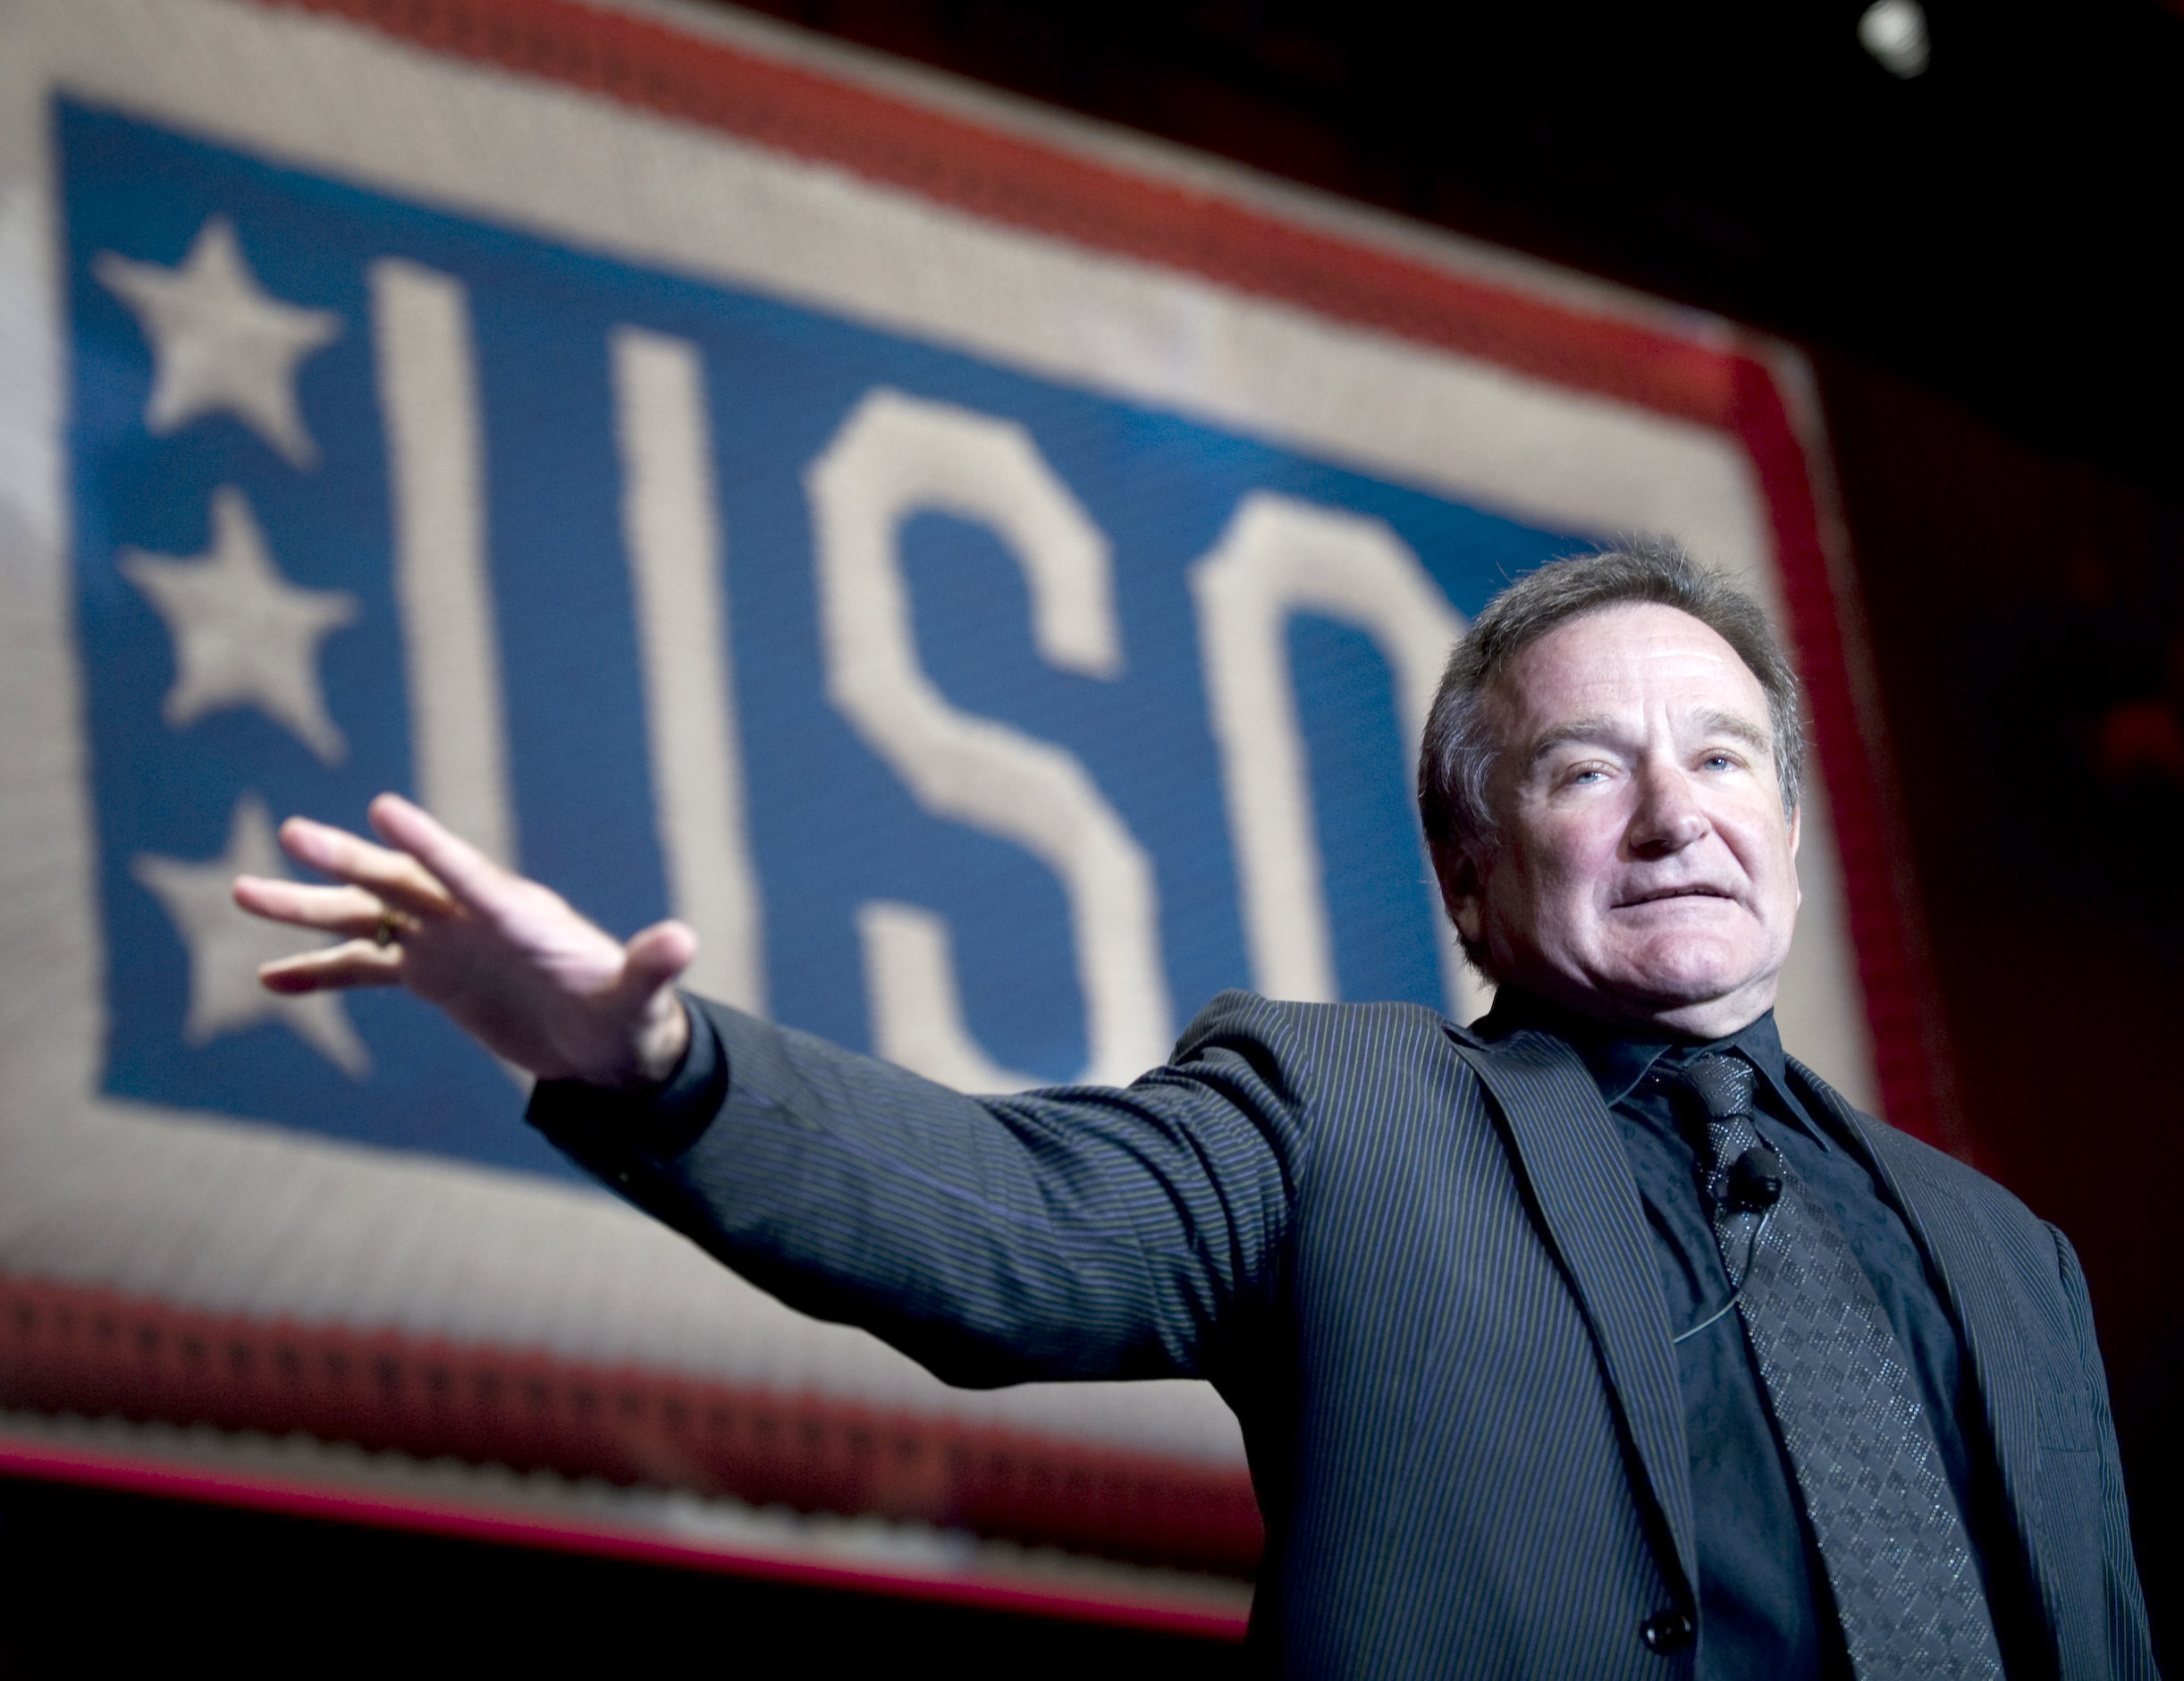 SAG-AFTRA names its new screening room after Robin Williams